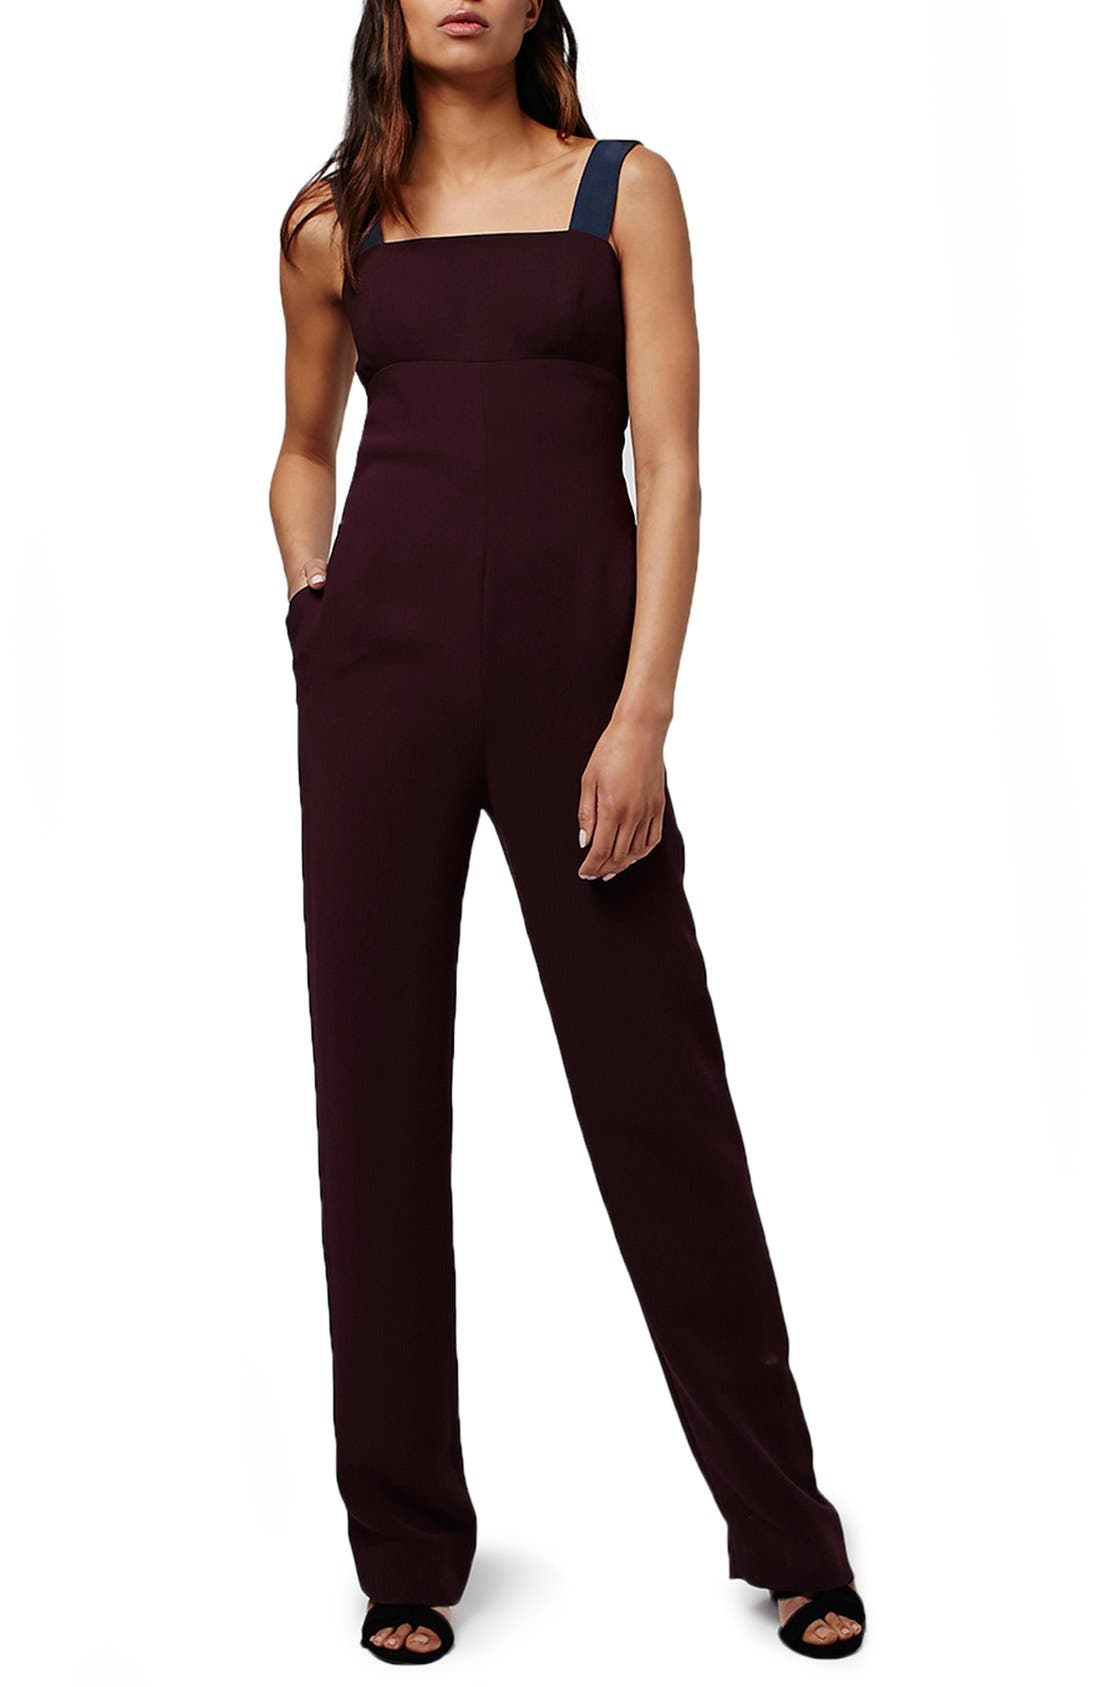 TOPSHOP, Cutout Back Pinafore Jumpsuit, Main thumbnail 1, color, 930